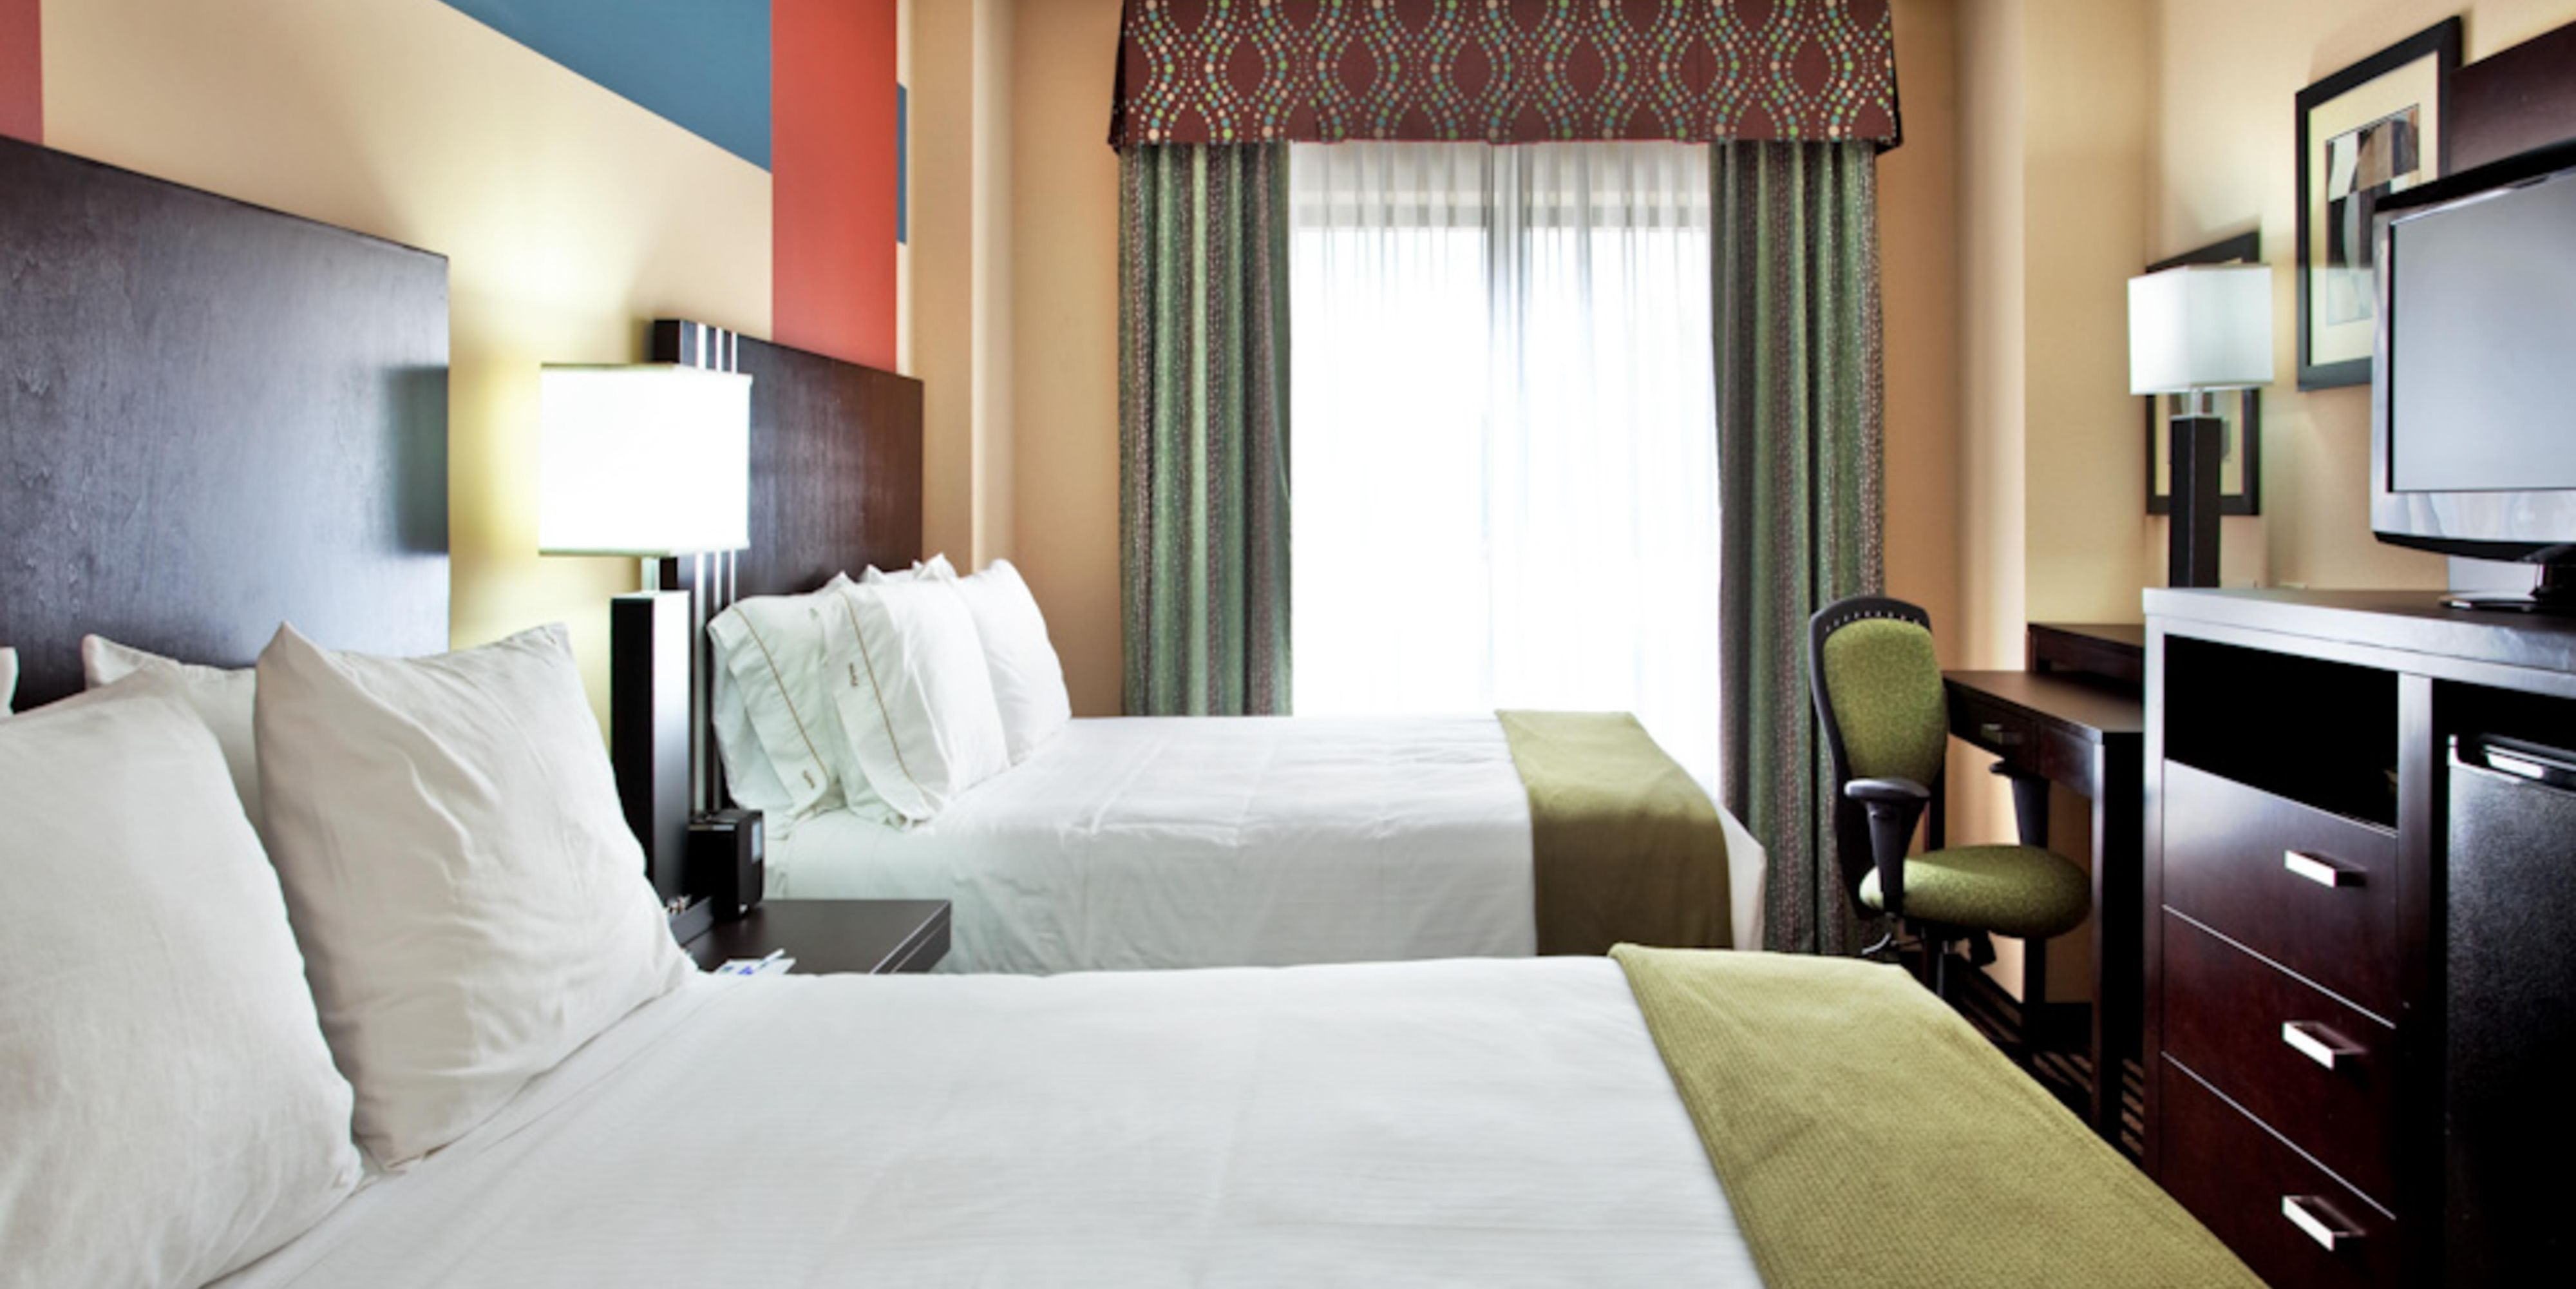 Holiday Inn Express & Suites La Place Hotel in La Place by IHG